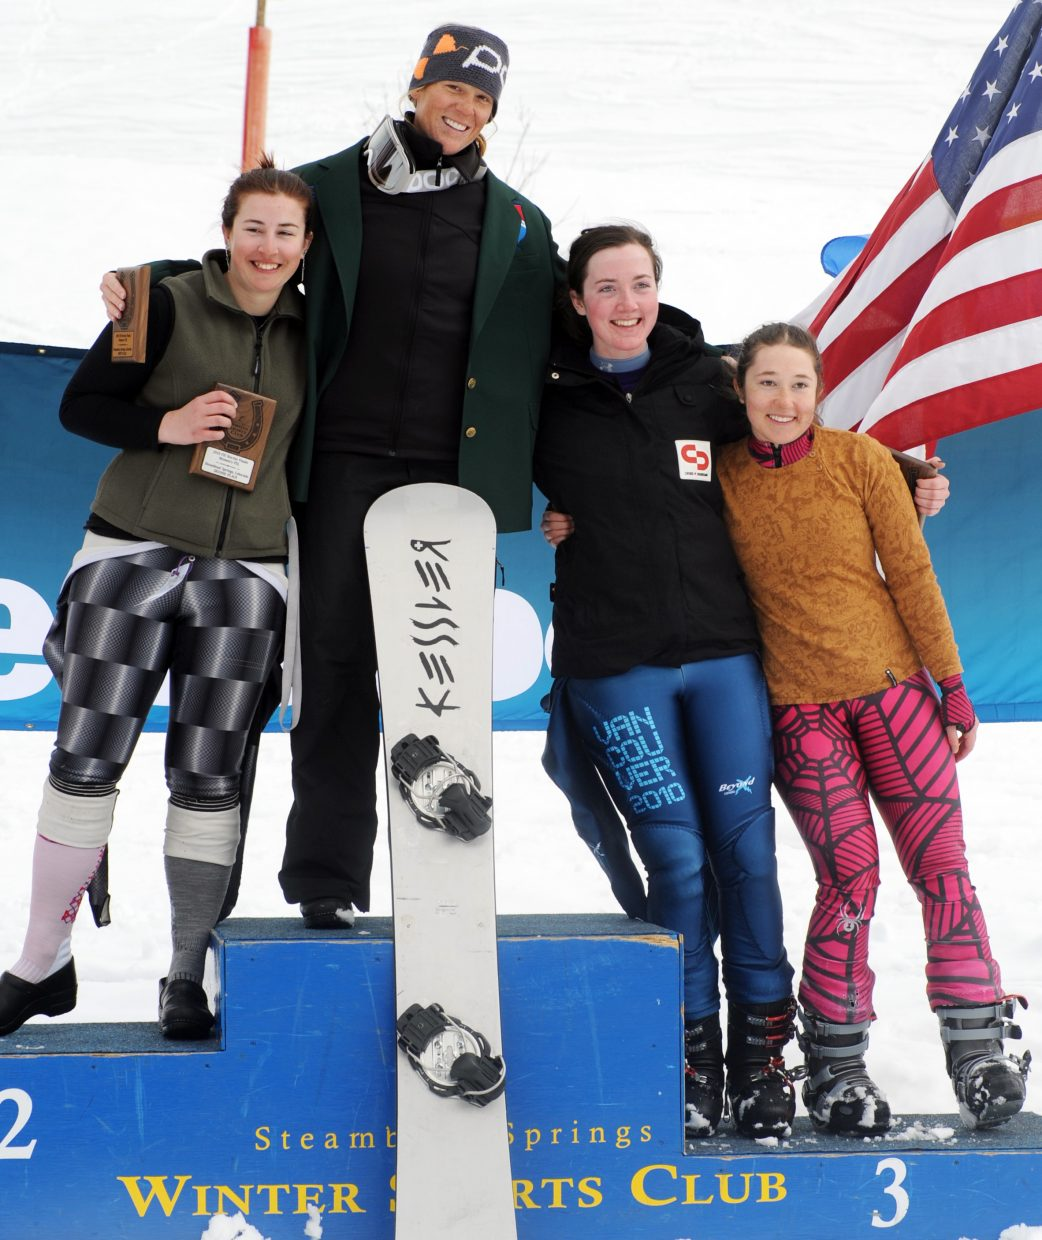 Heather Herde, left, Lindsay Lloyd, Megan Farrell and Casandra Wagar celebrate on the podium after Saturday's parallel slalom event at Steamboat Ski Area. Lloyd won, winning her second national championship in as many days and locking up the season-long NorAm points title.